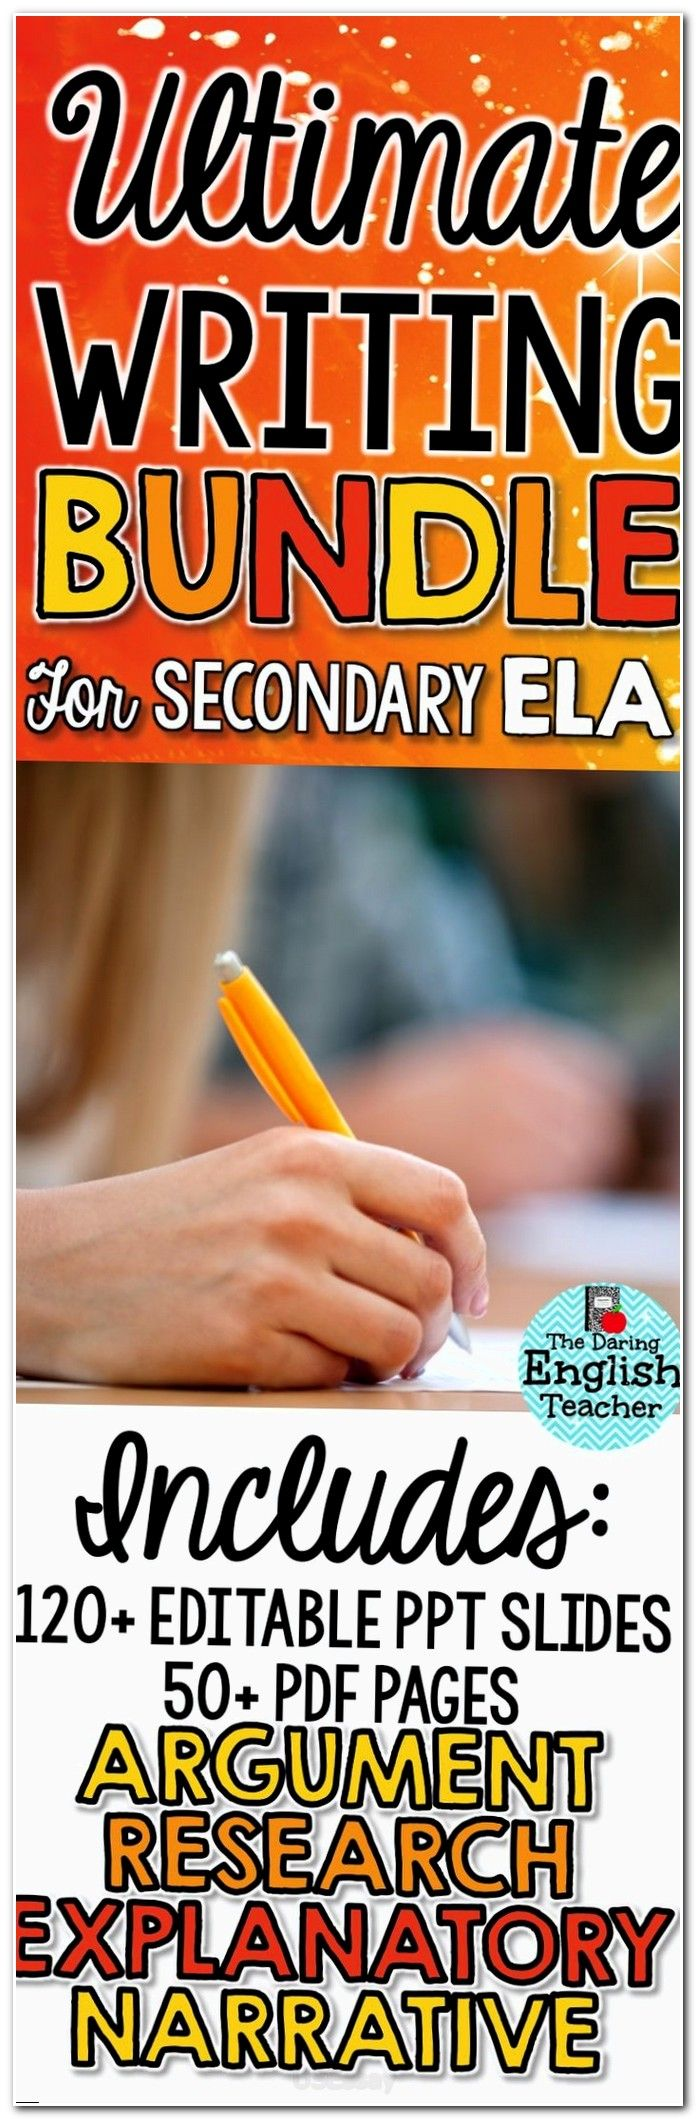 #essay #wrightessay gates scholarship, best coursework writers, compare and contrast essay topics for kids, writing a research project, business essay writing services, what is the purpose of academic writing, short speech topics, what is a problem solution essay, how to do a dissertation proposal, my leadership skills essay, best books on academic writing, write a thesis for me, example of an analysis paper, research report format, examples of professional writing samples